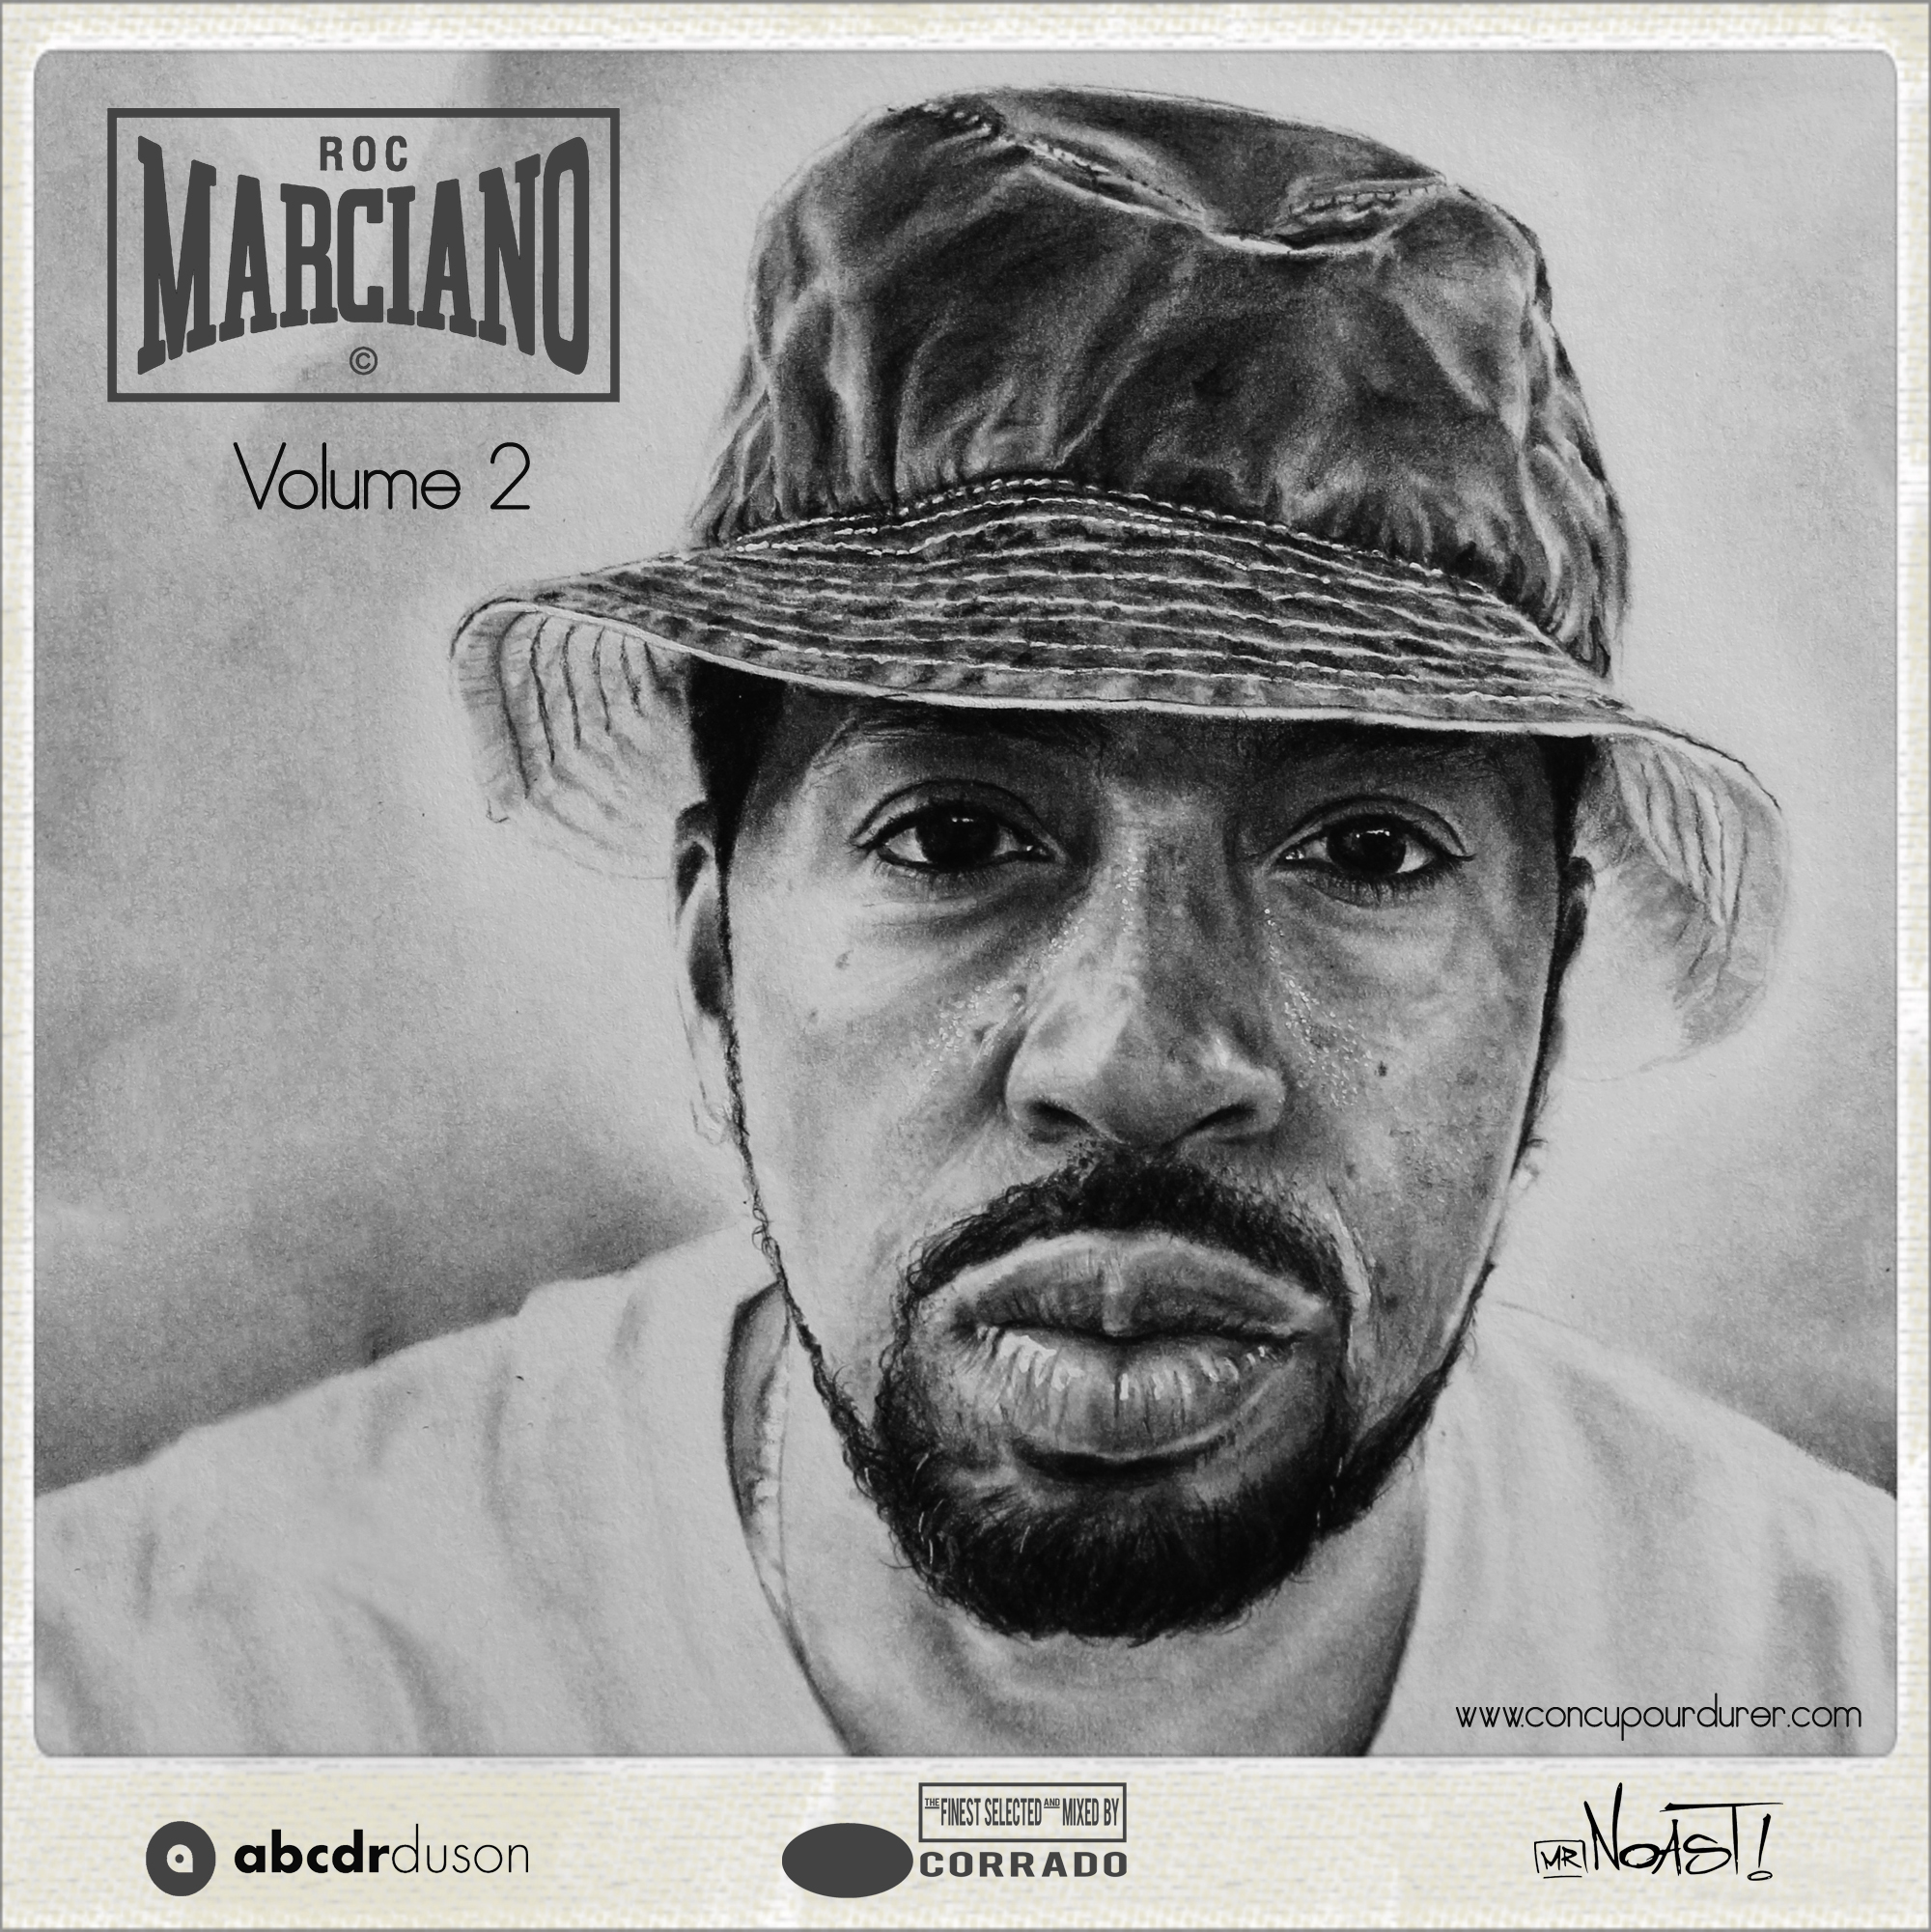 ROC MARCIANO - BTL Mix - Volume 2